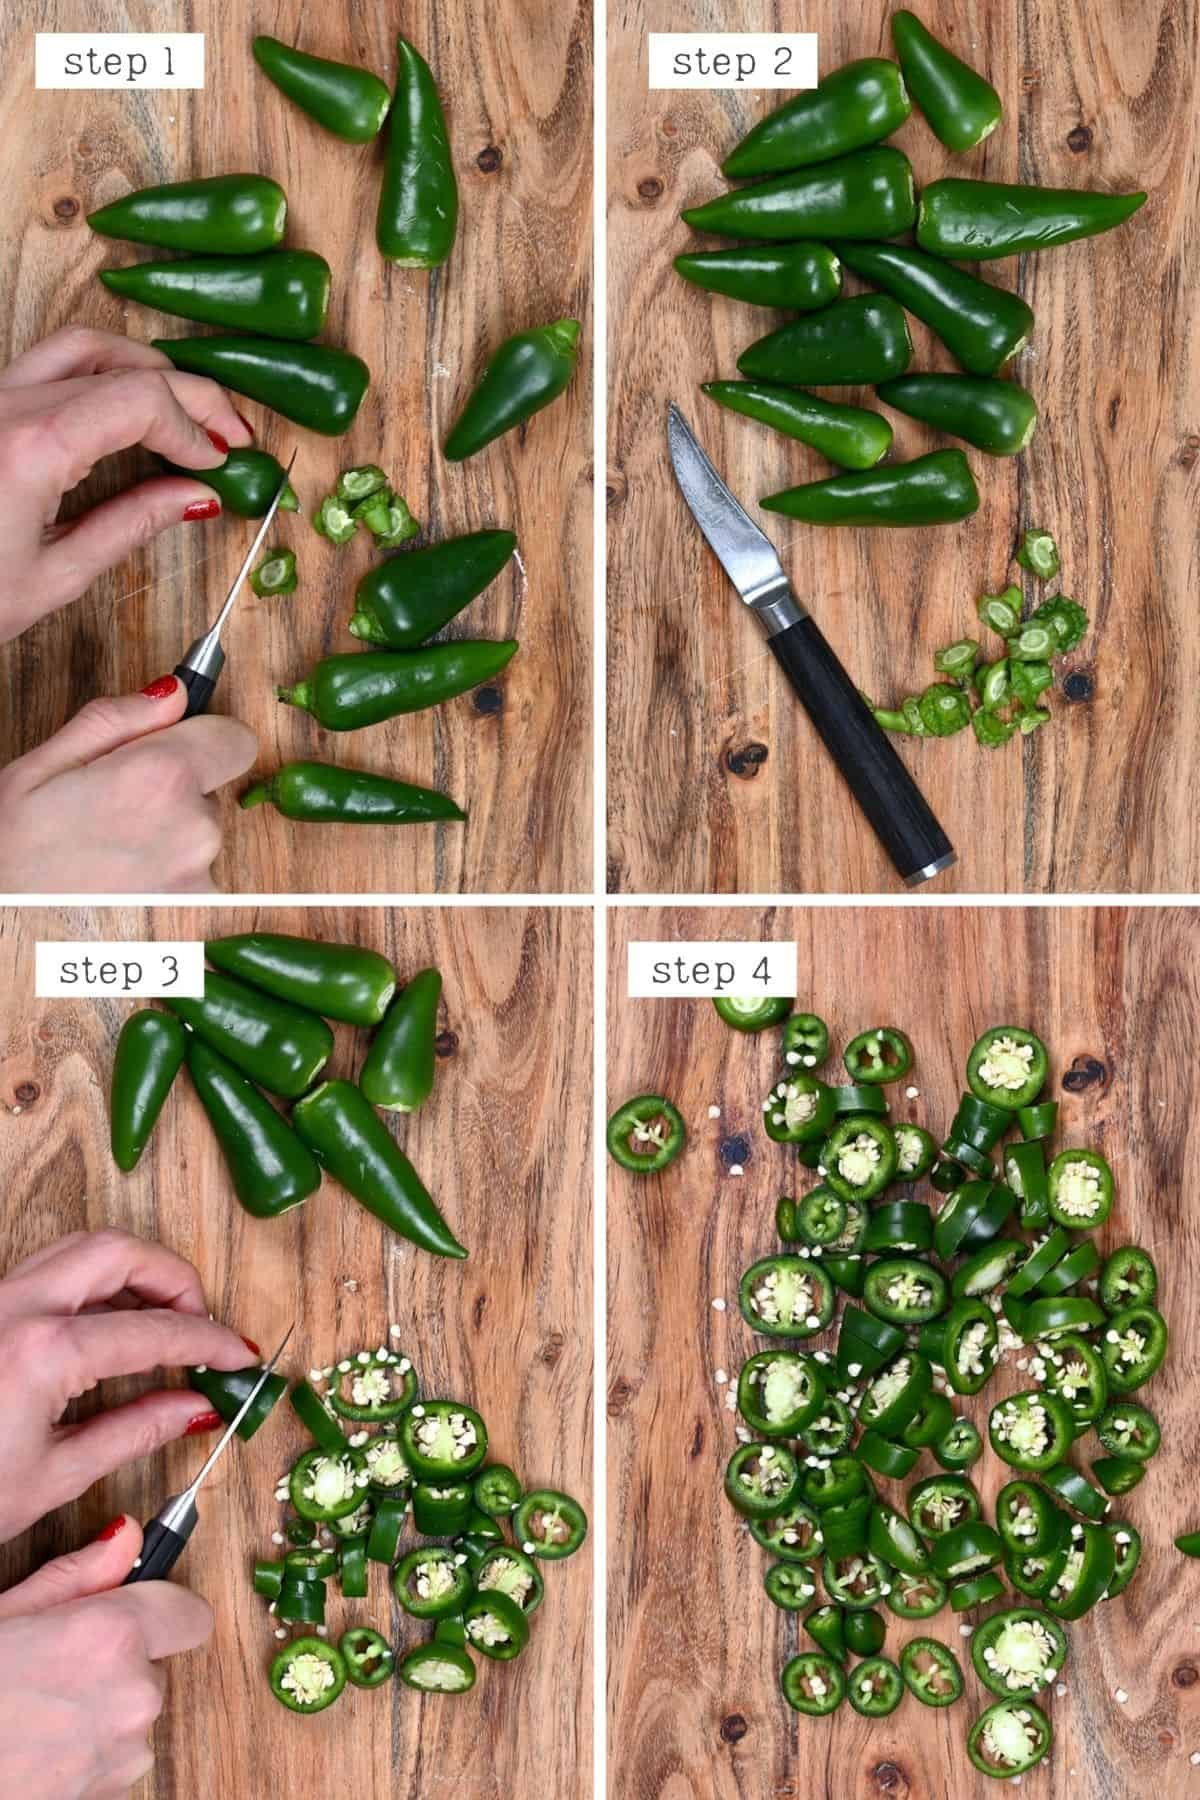 Steps for cutting jalapeños